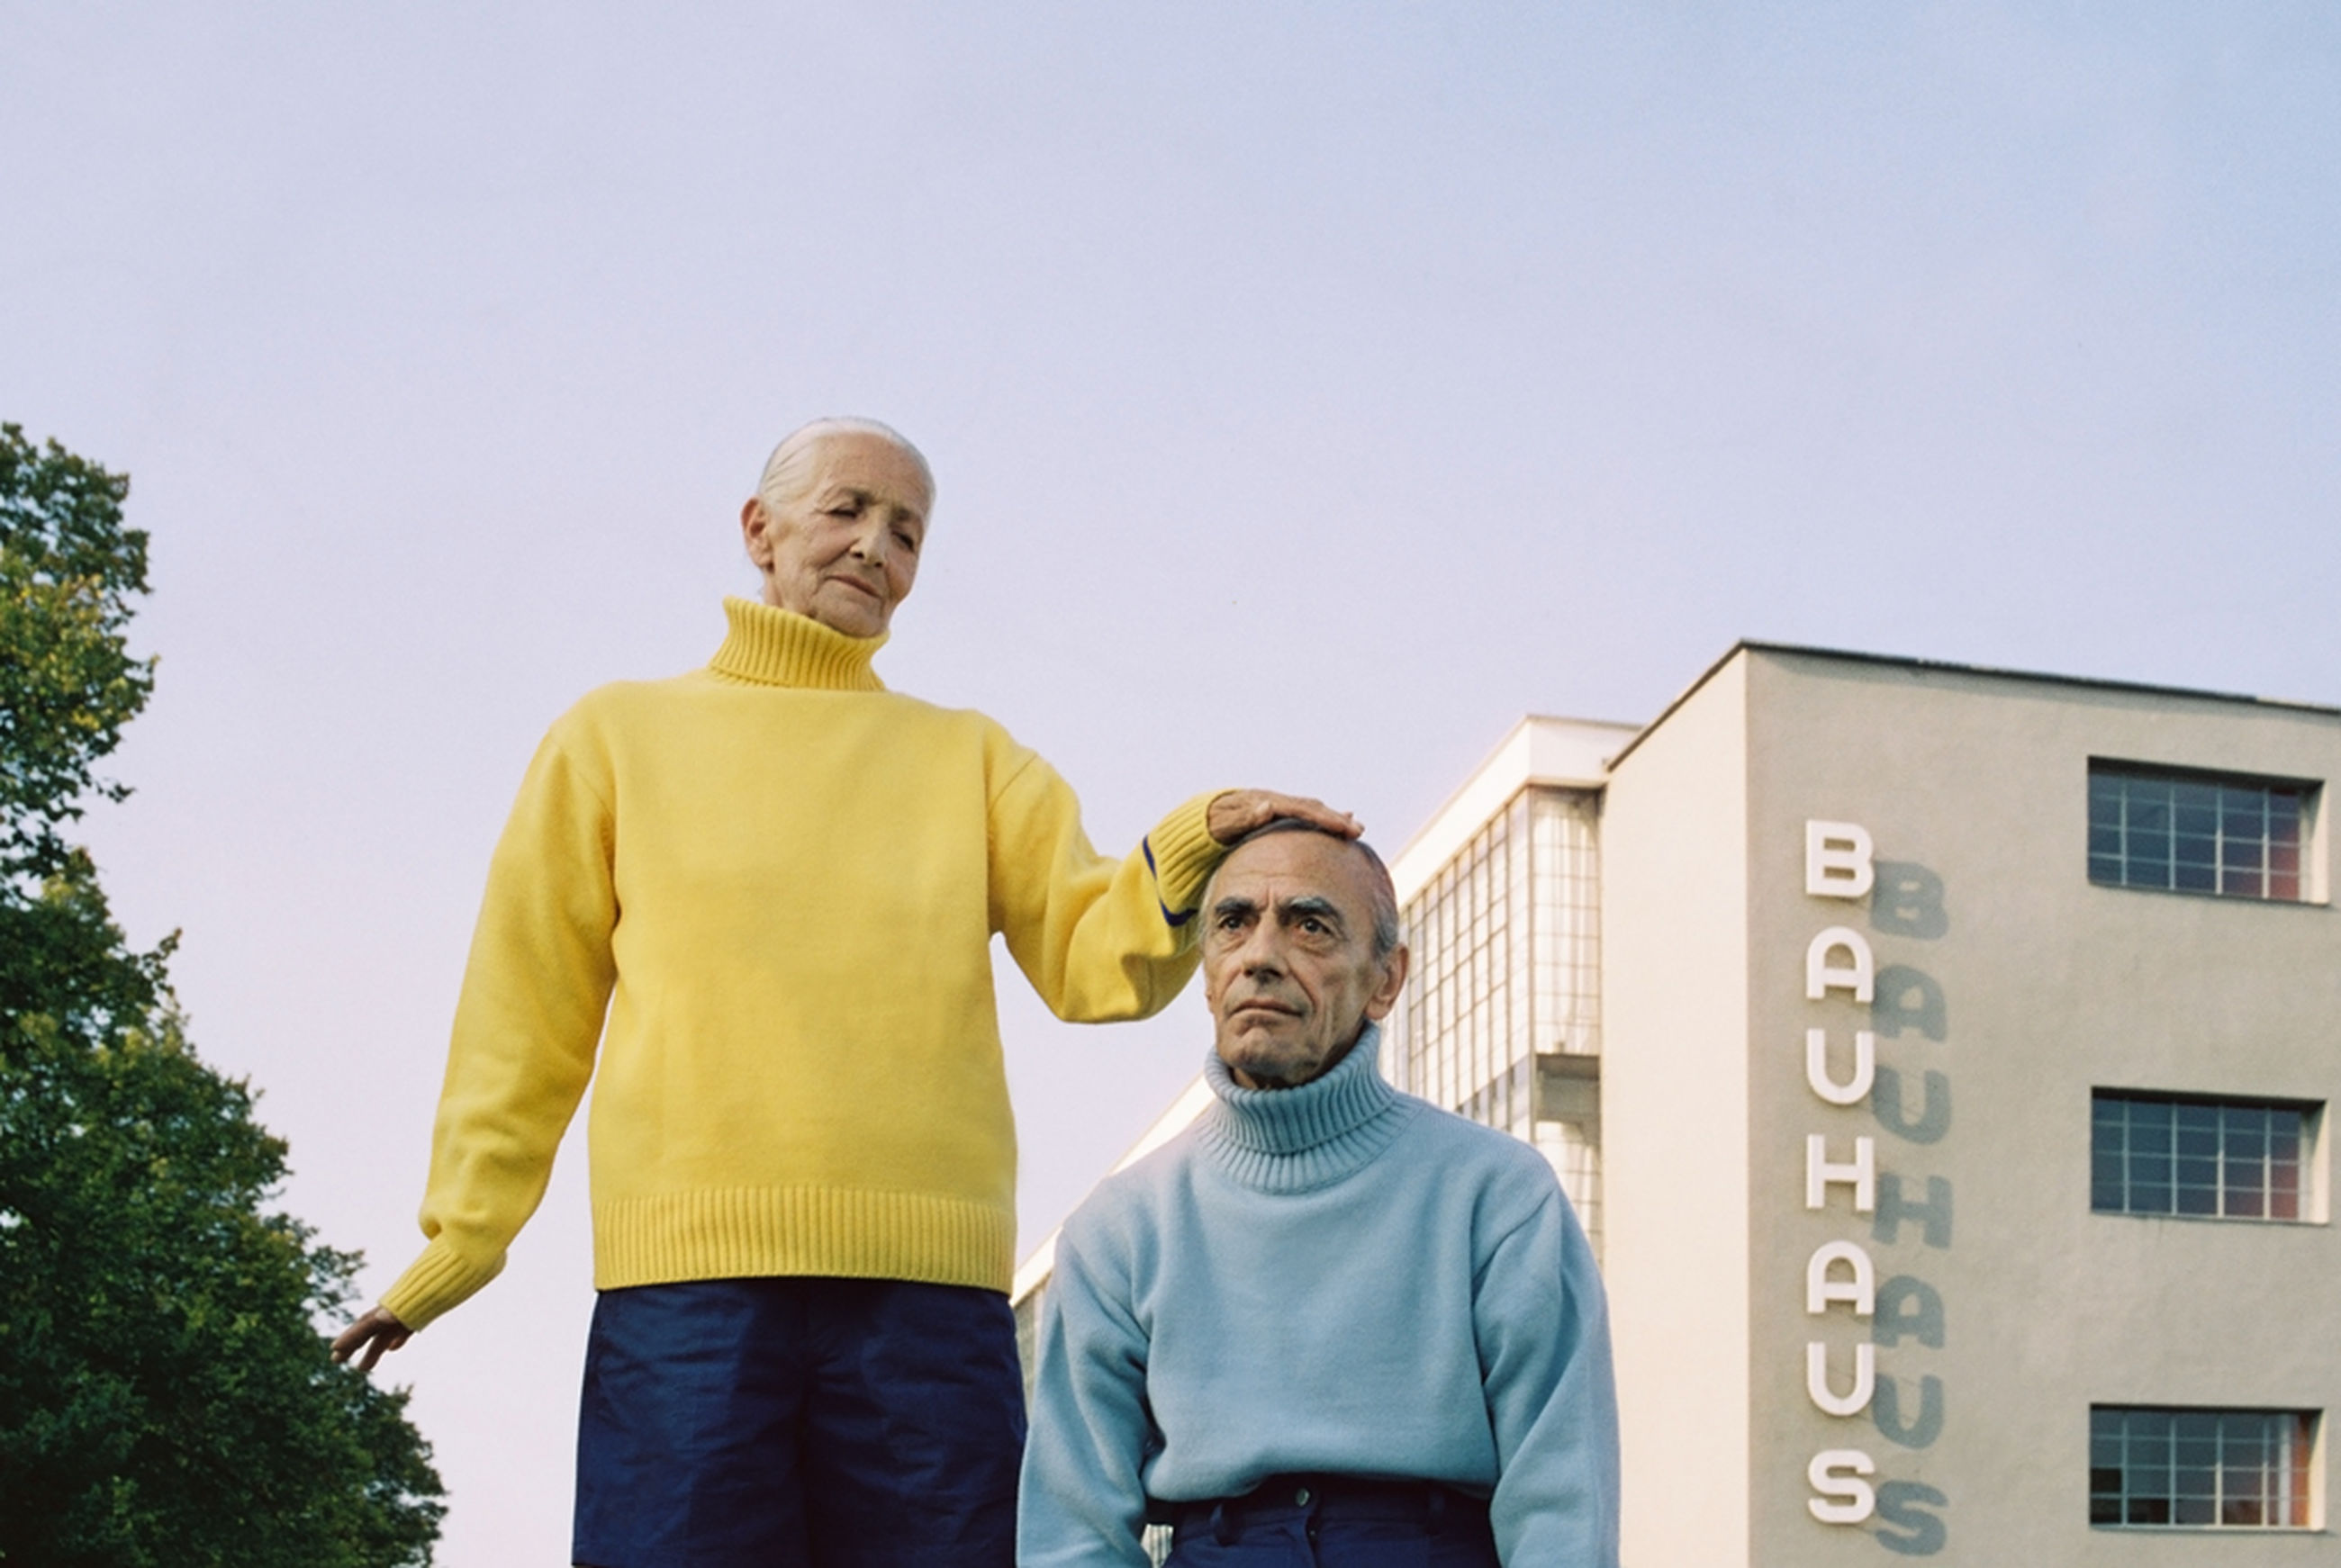 two people, casual clothing, front view, low angle view, real people, house, standing, clear sky, looking at camera, mature men, togetherness, smiling, men, outdoors, lifestyles, day, building exterior, young adult, leisure activity, happiness, father, portrait, young men, built structure, architecture, residential building, yellow, boys, bonding, young women, friendship, sky, adult, people